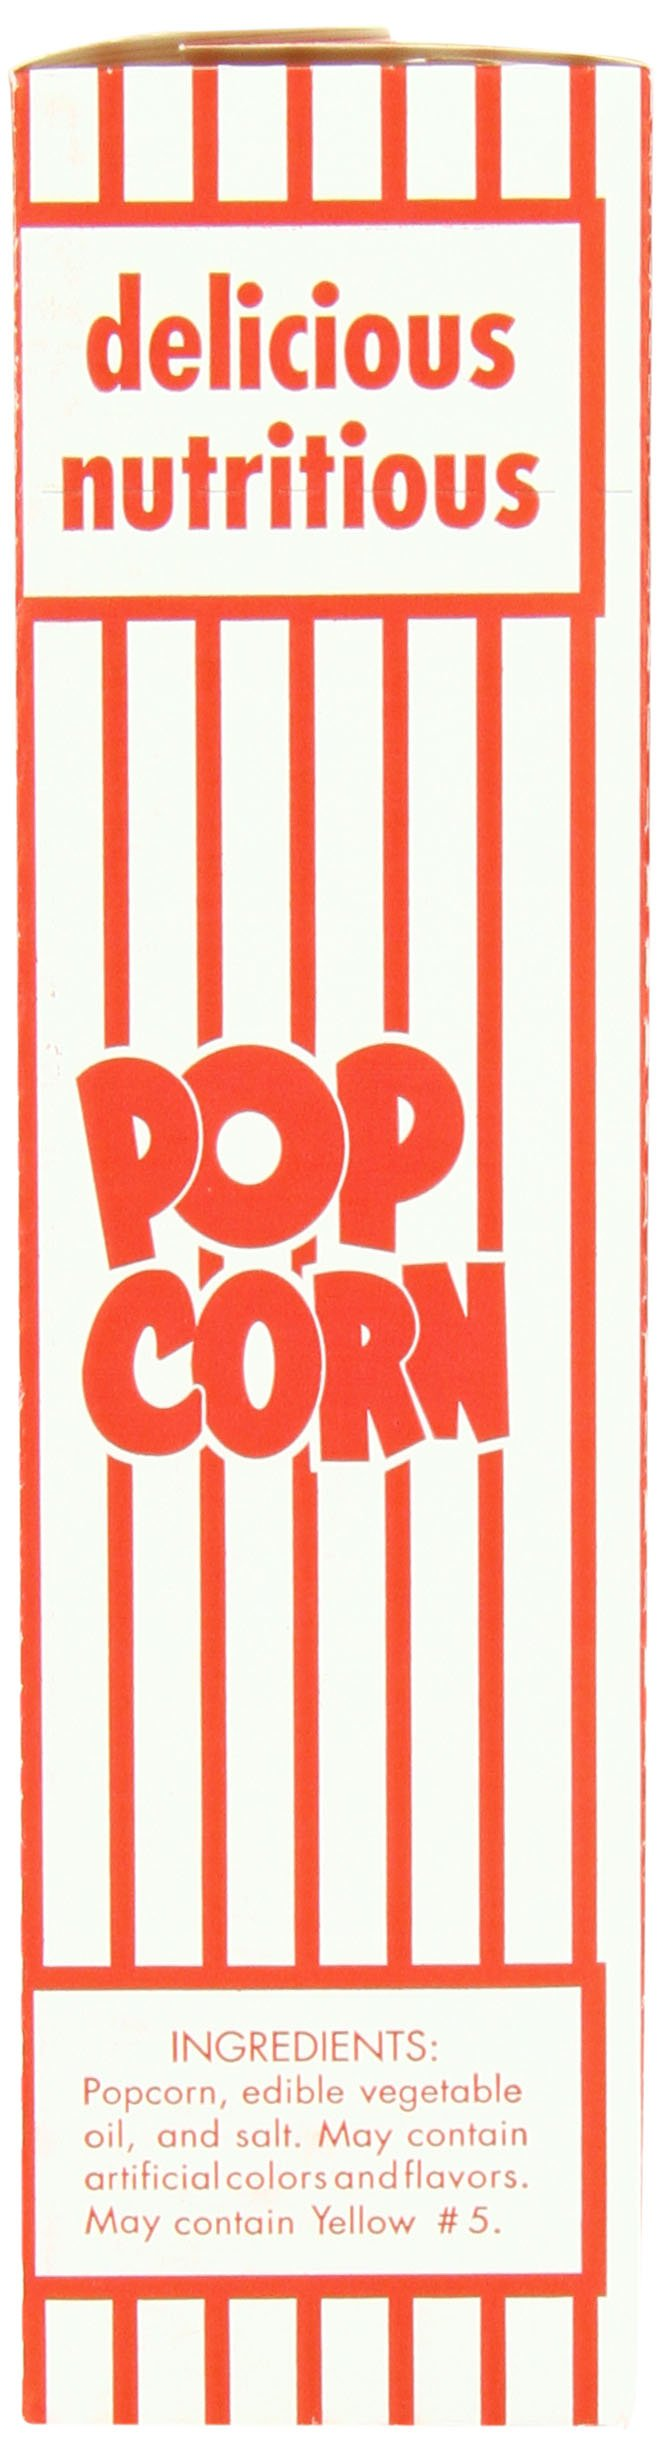 Snappy Popcorn 3E Close-Top Popcorn Box, 100/Case, 6 Pound by Snappy Popcorn (Image #3)